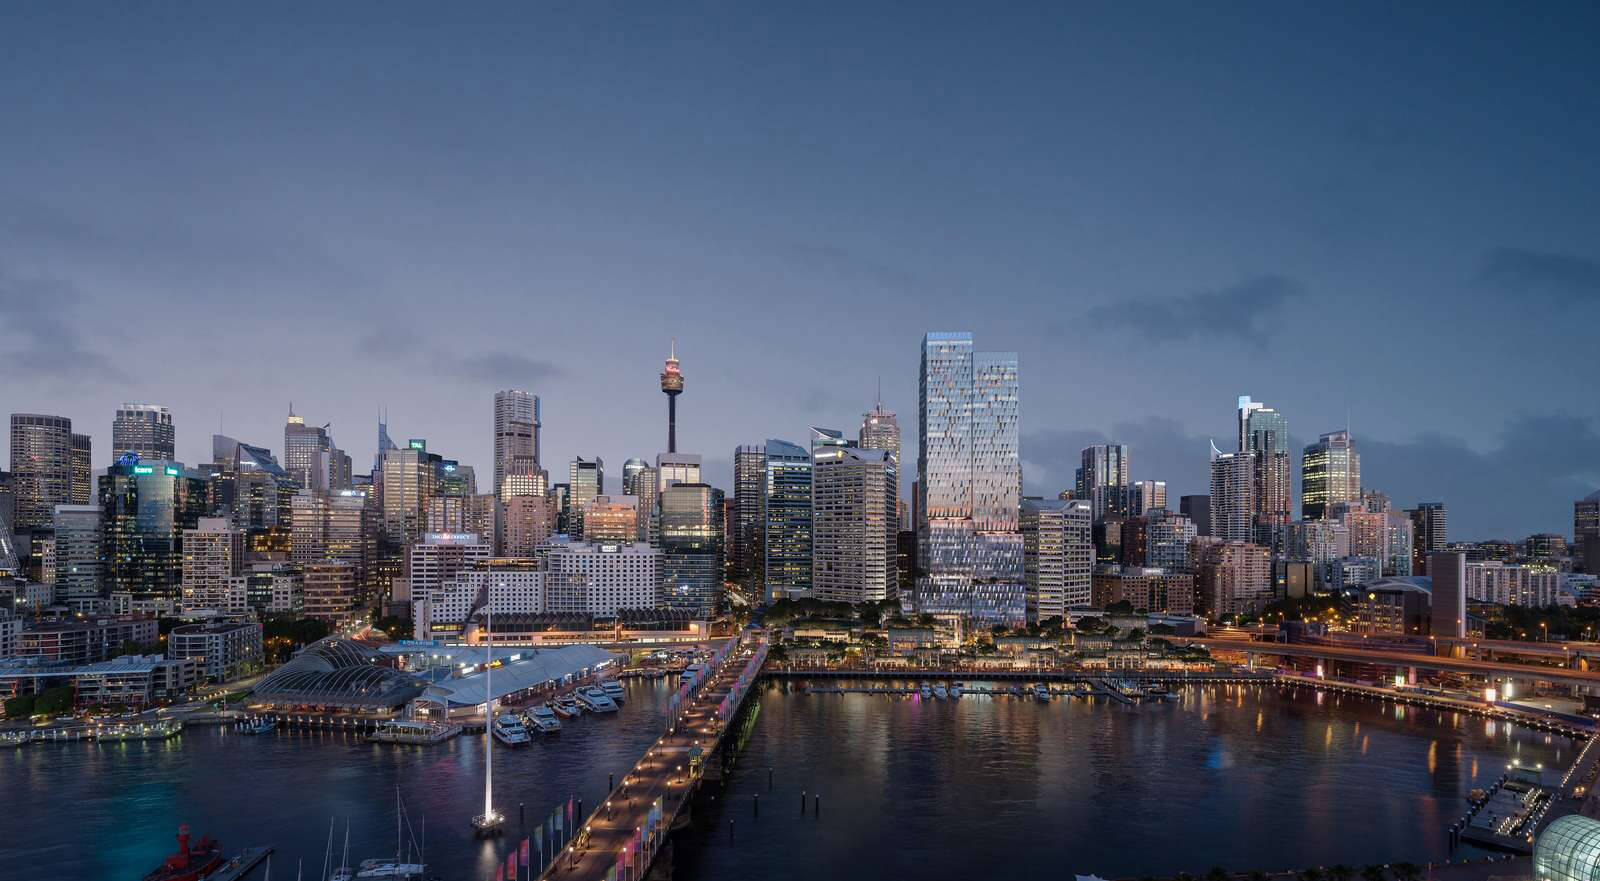 The new skyscraper of the Cockle Bay Park development merging into Sydney skyline | Cockle Bay Park | Henning Larsen | STIRworld